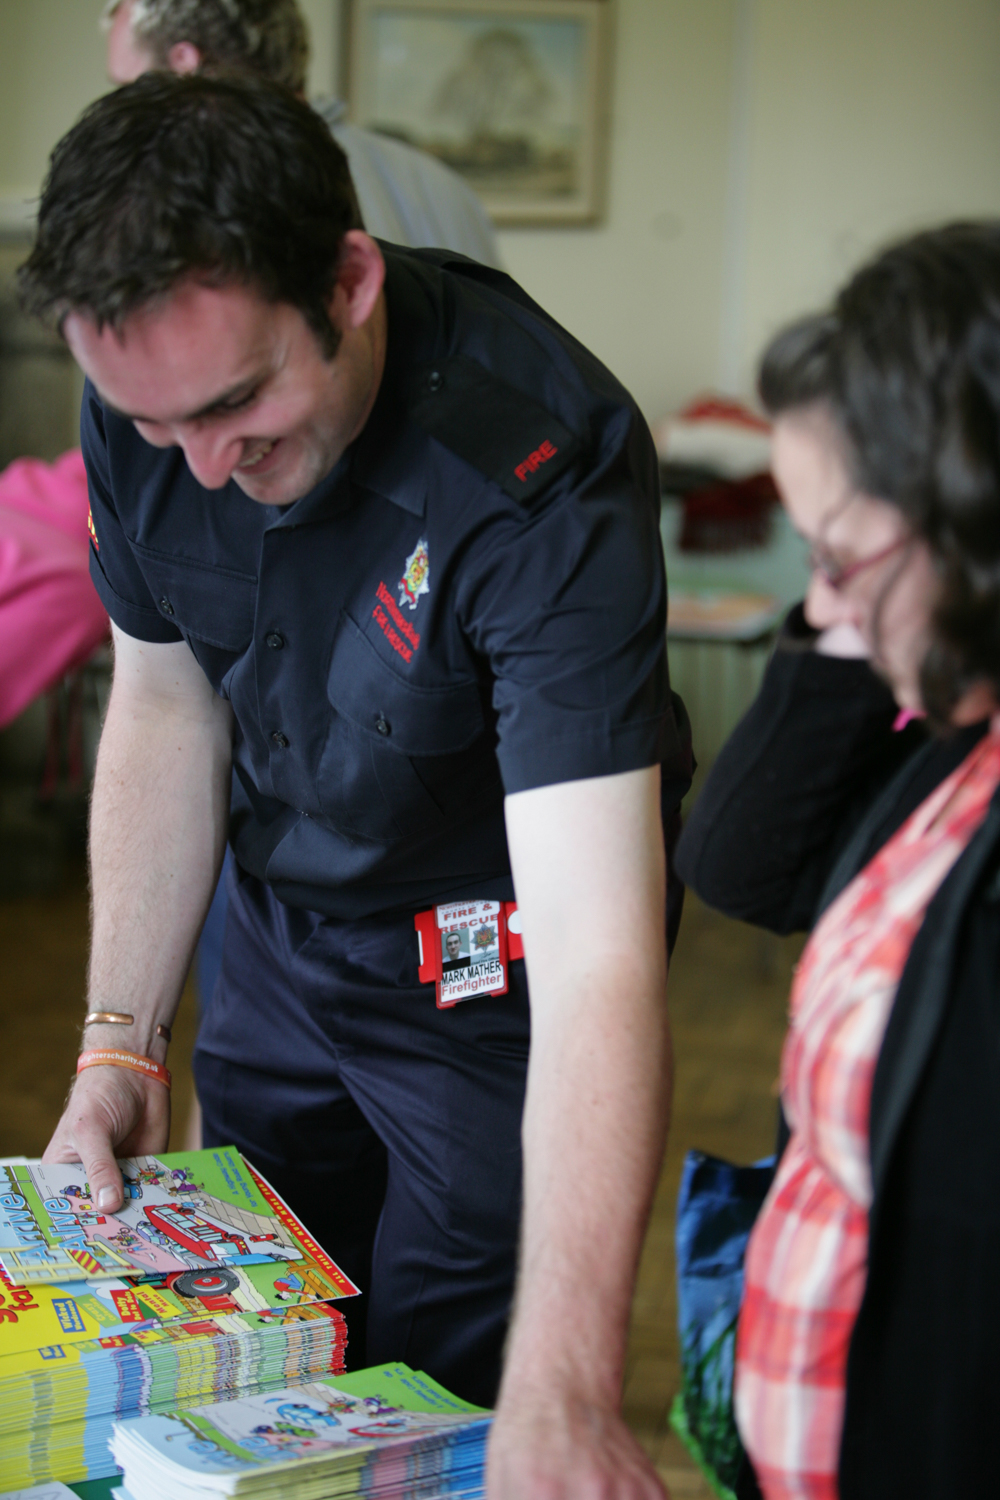 PICTORIAL_BERWICK_bookstart-heatherslaw-funded-day-out-educational-extended-services-lorna-chappell-organised-fire-police-9764.jpg